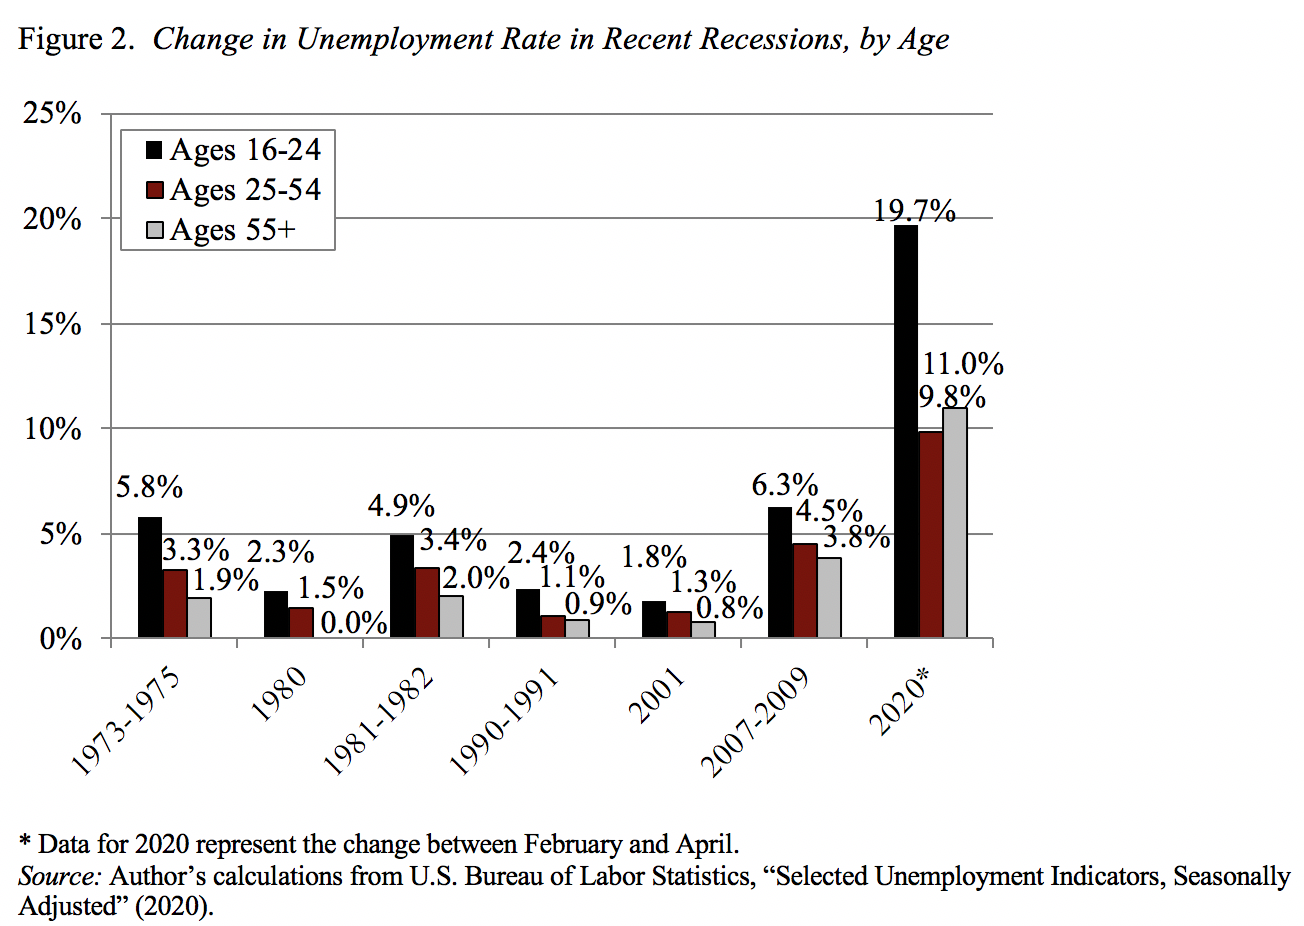 Marketwatch graph on change in unemployment rate in recent recessions by age